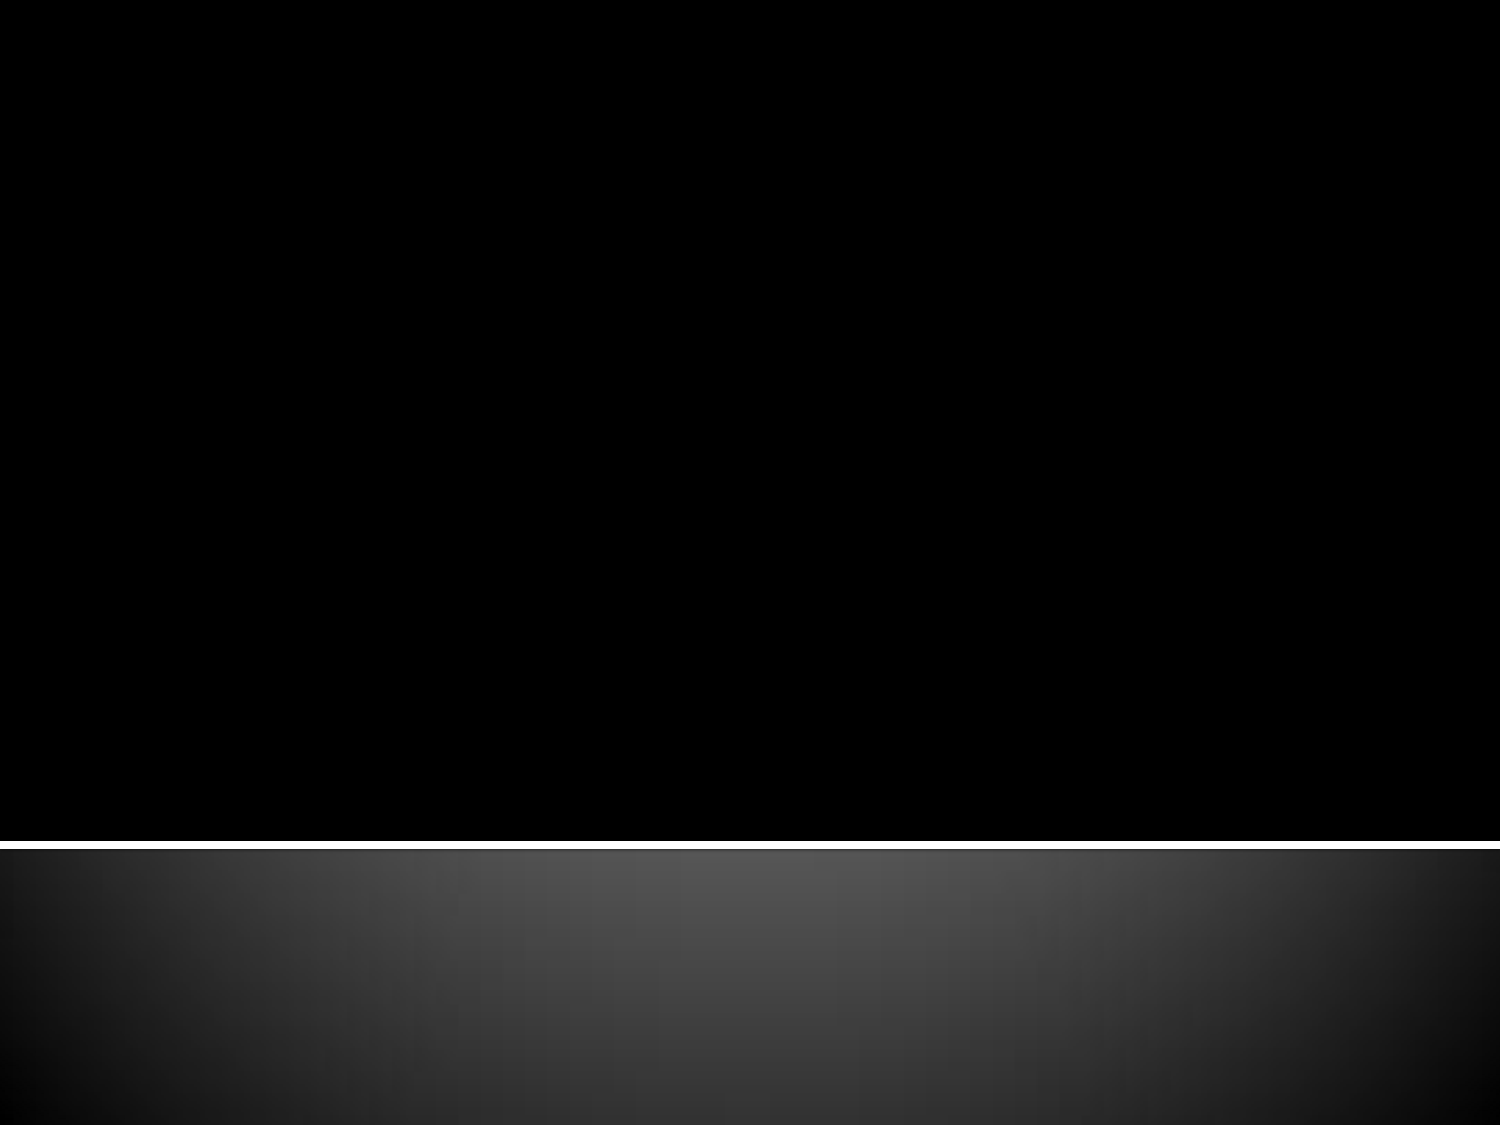 Backgrounds White Presentation And Black